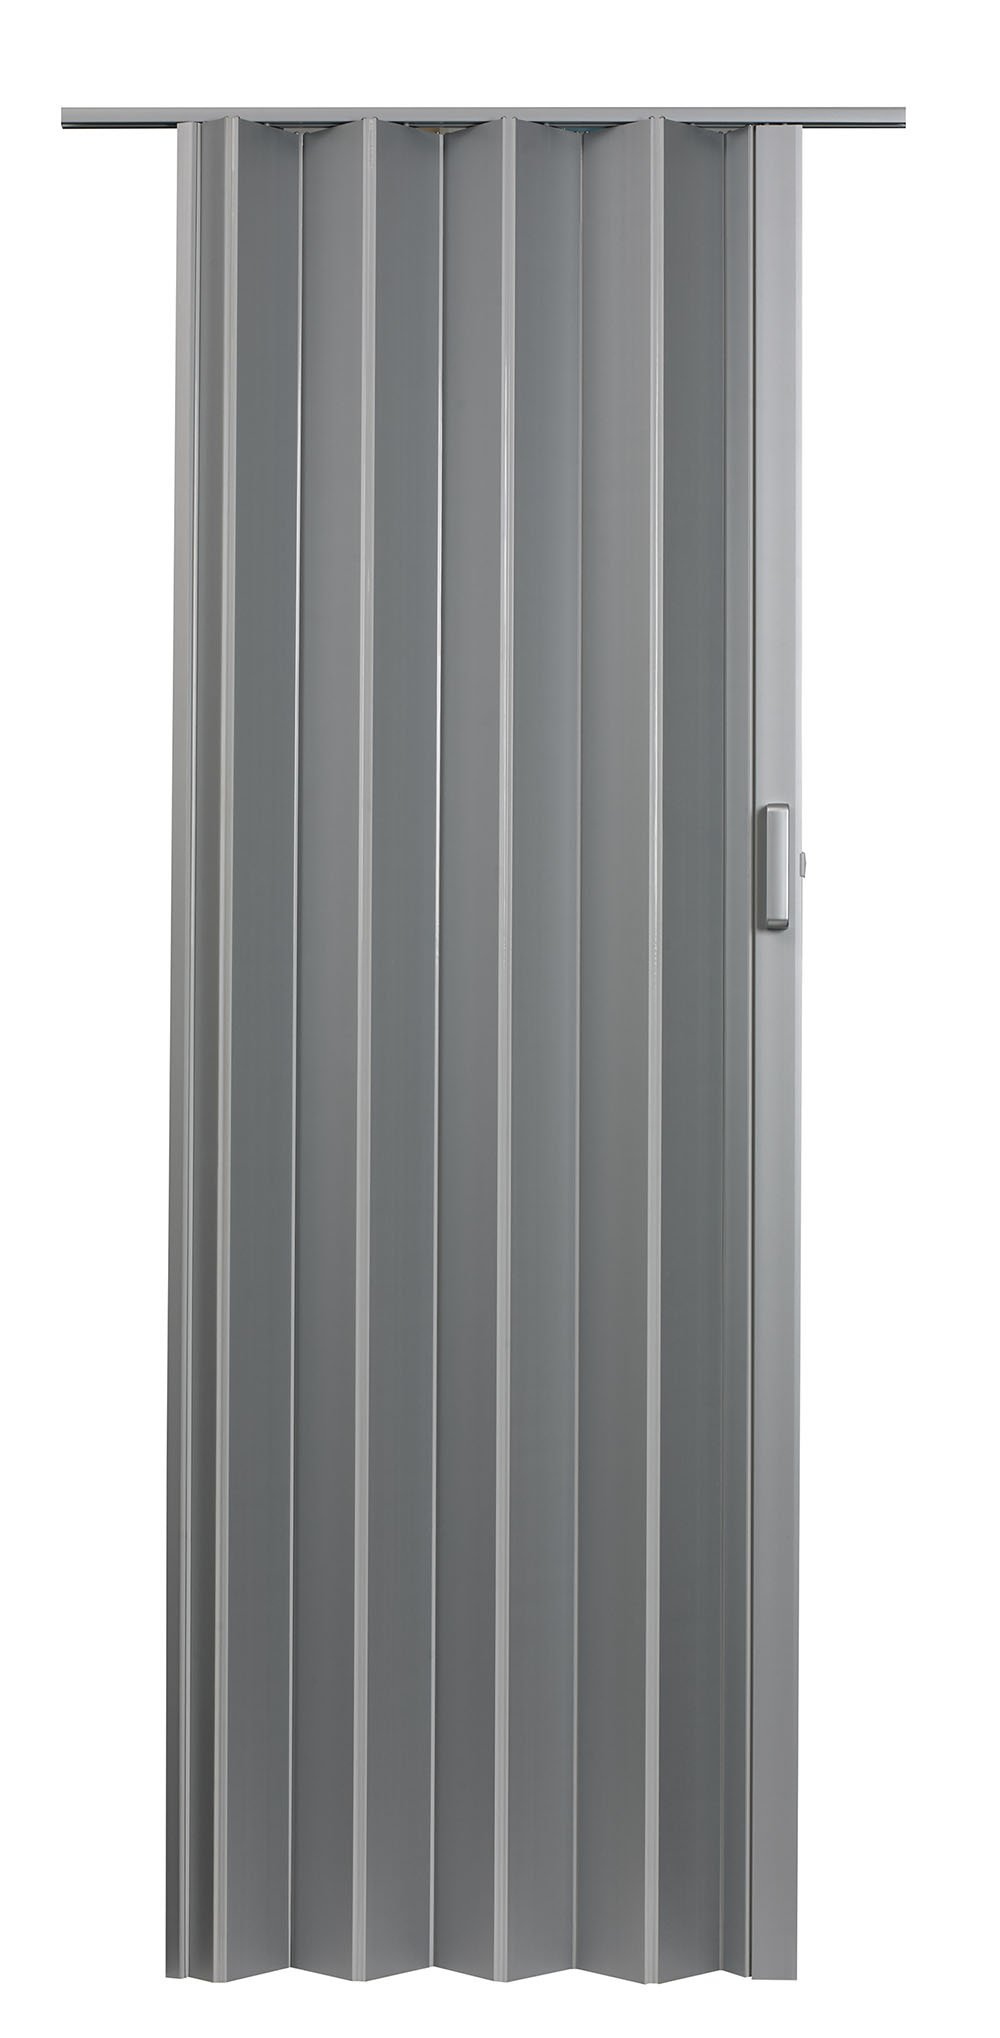 LTL Home Products EL3680S Elite Interior Accordion Folding Door, 36 x 80 Inches, Satin Silver by LTL Home Products